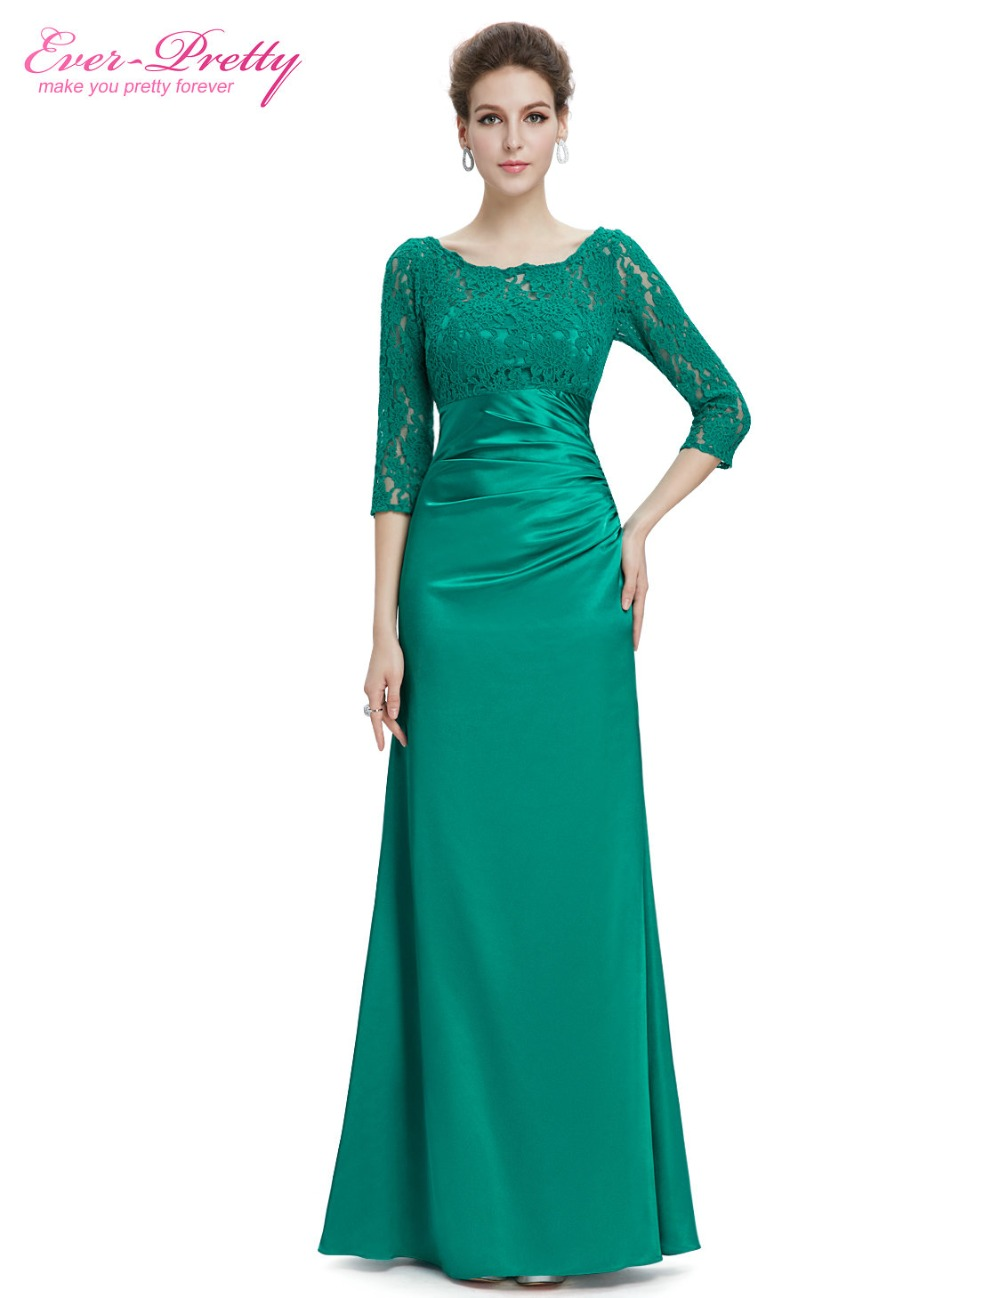 Aliexpress.com : Buy [Clearance Sale] Evening Dresses HE09882 Ever ...